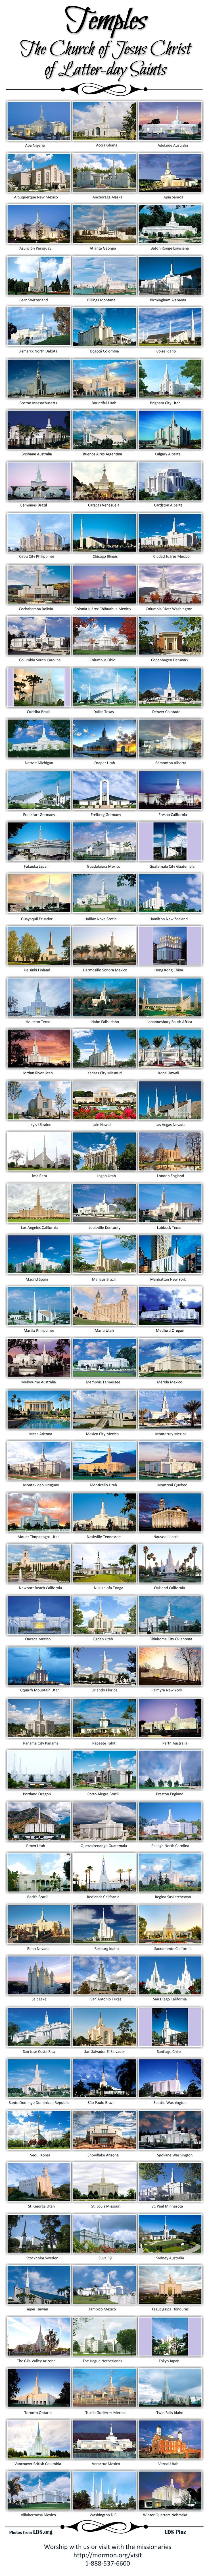 The Church of Jesus Christ of Latter-day Saints (Mormon) has 141 operating Temples around the world.